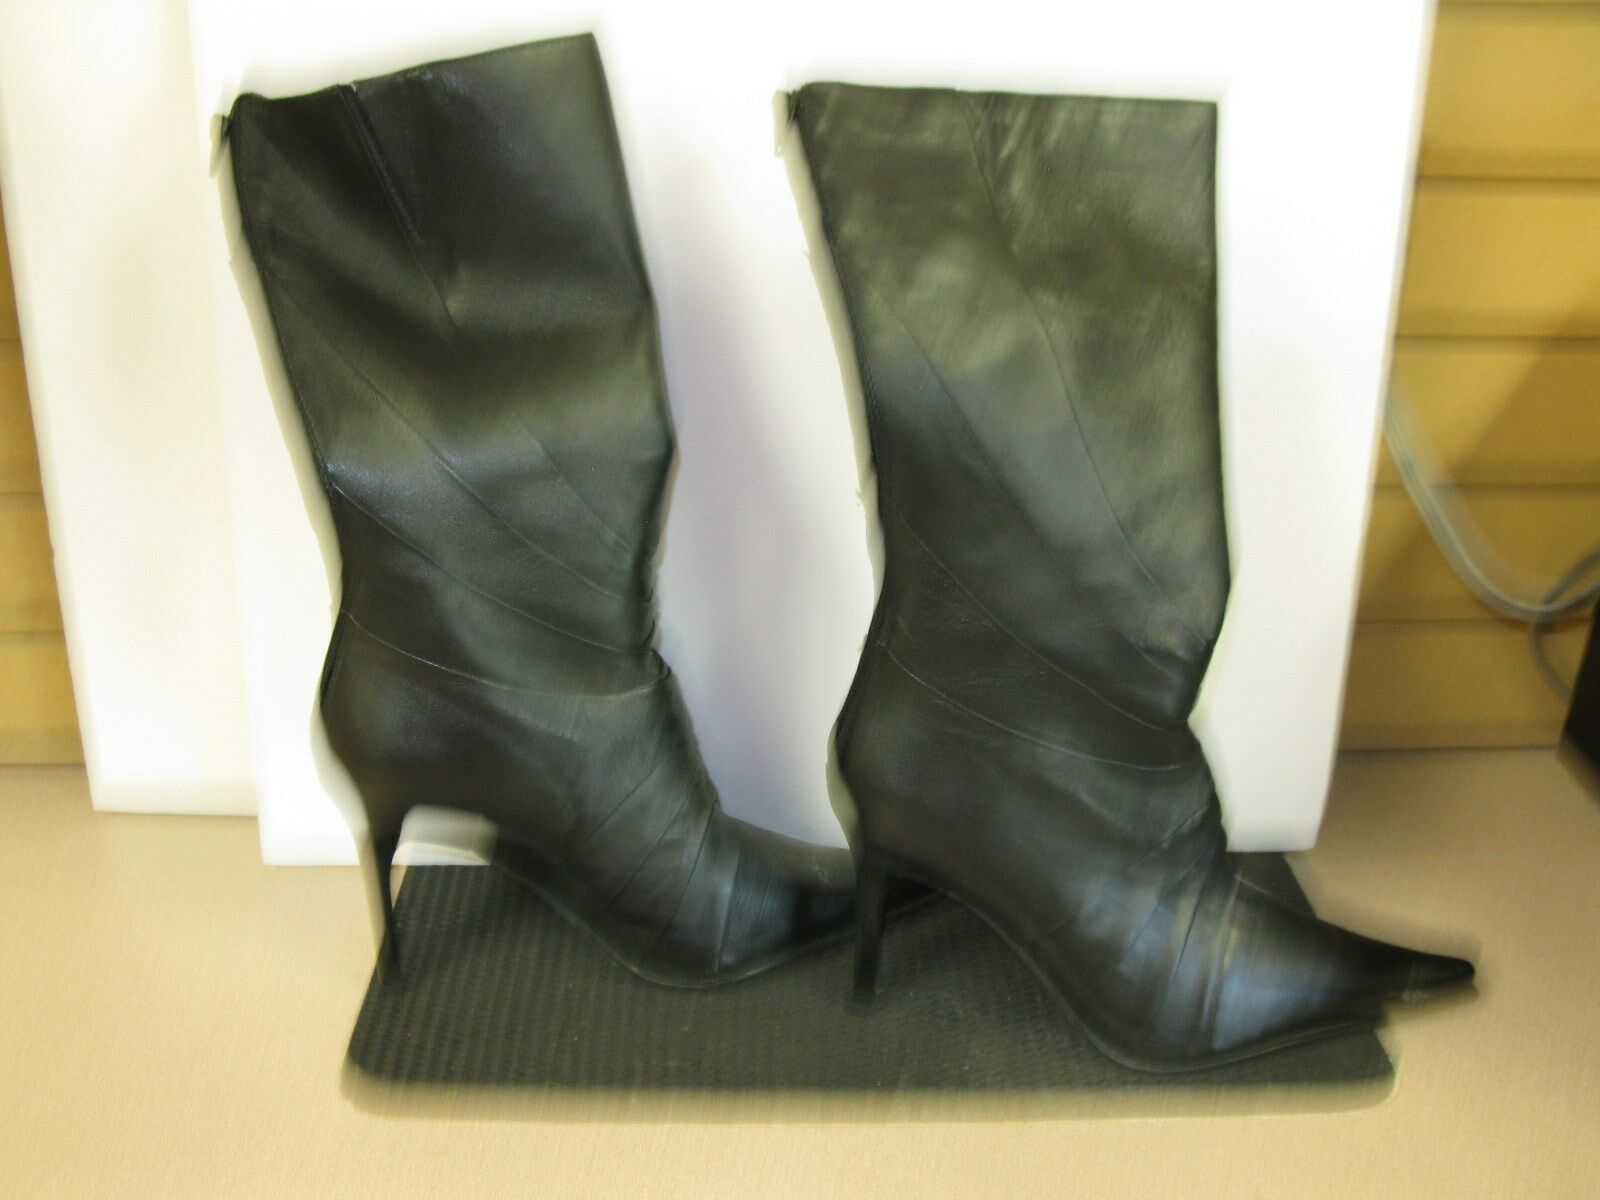 ALDO Boots High Heel Boots Mid Calf Black Pointed Toe Quality Leather Sz 40,10